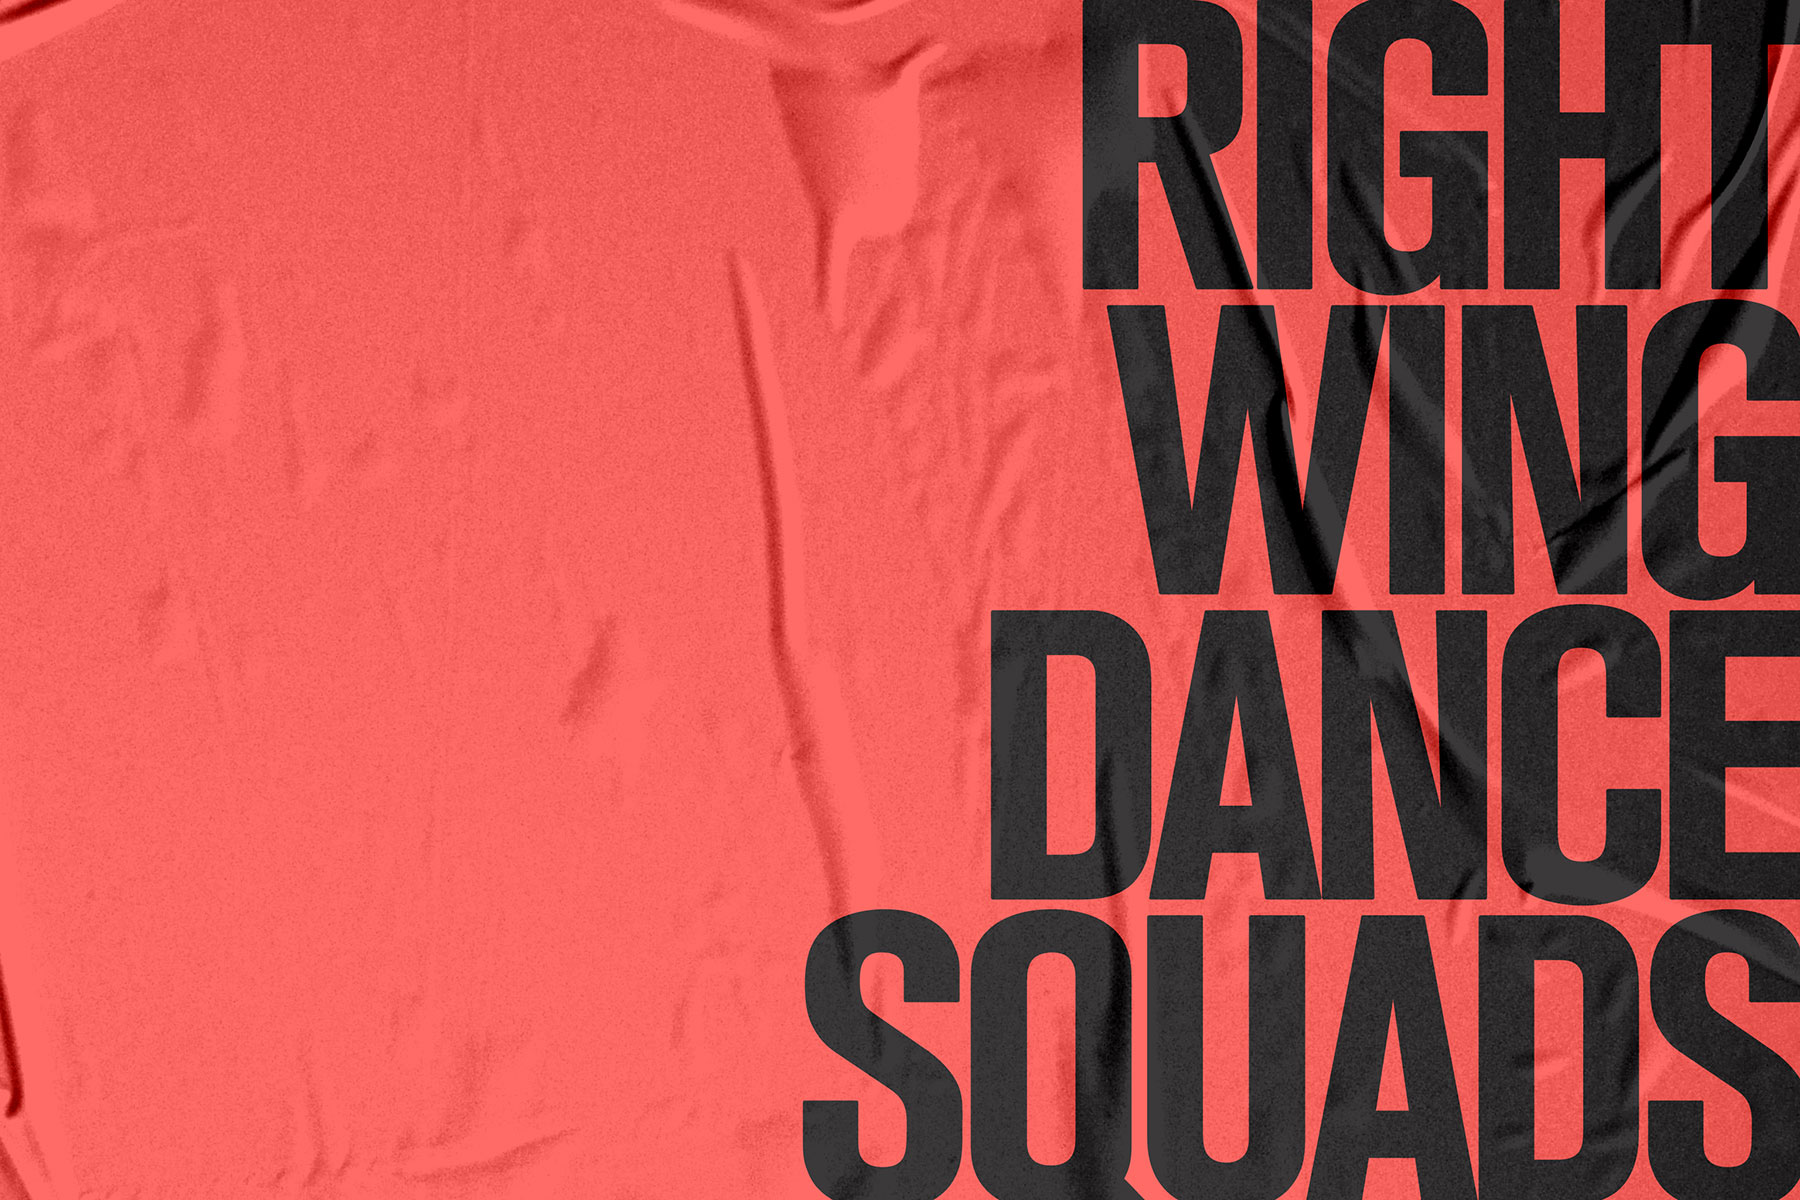 Right Wing Dance Squads